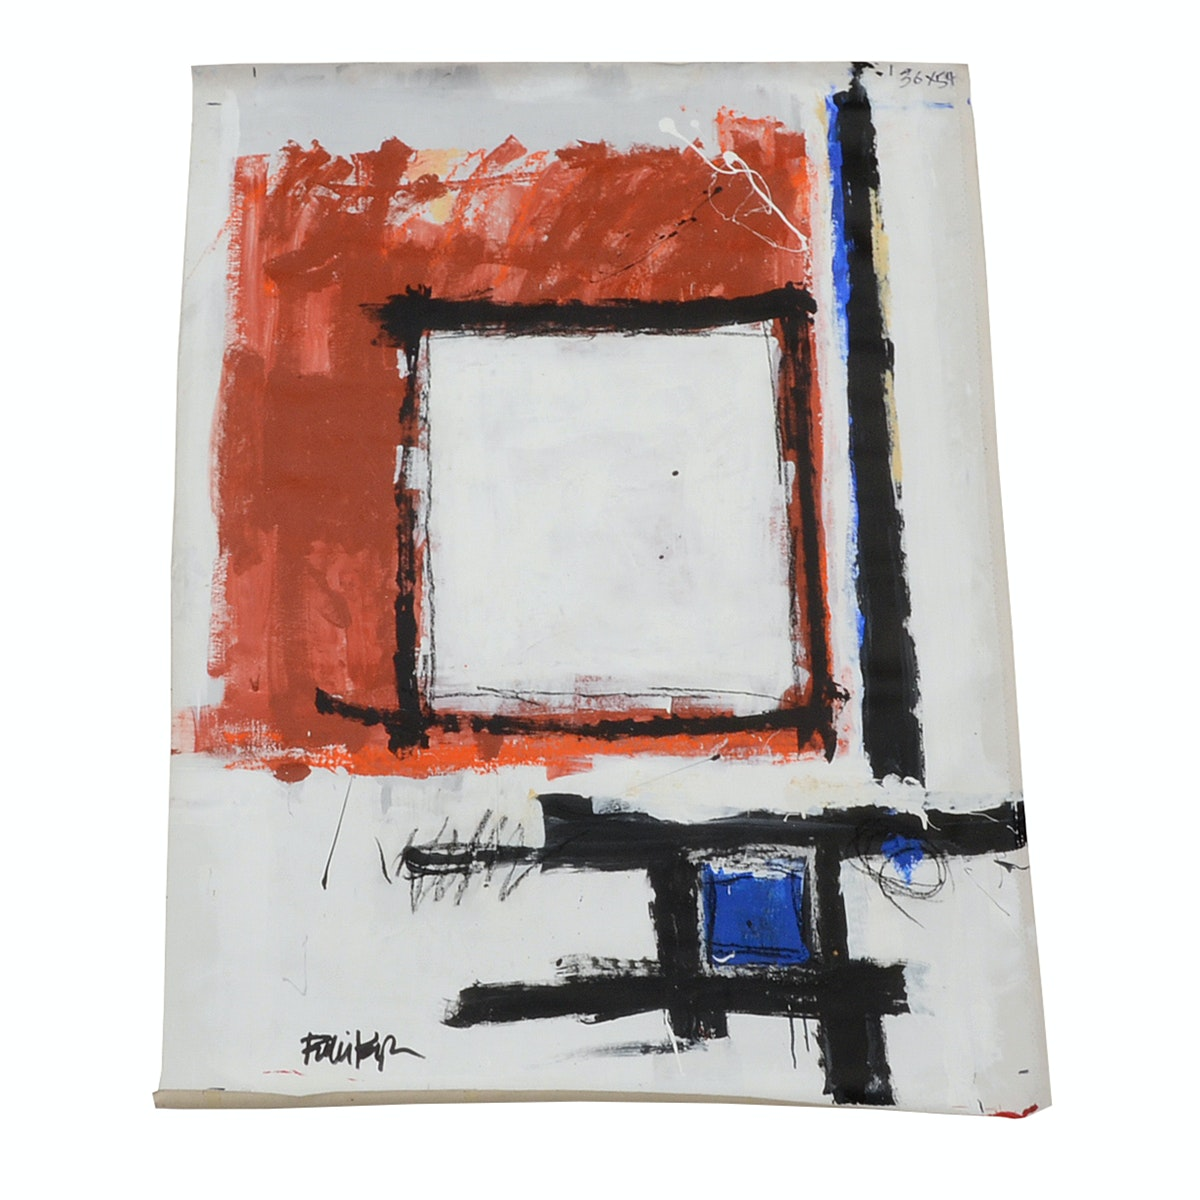 Robbie Kemper Original Mixed Media Painting on Unstretched Canvas